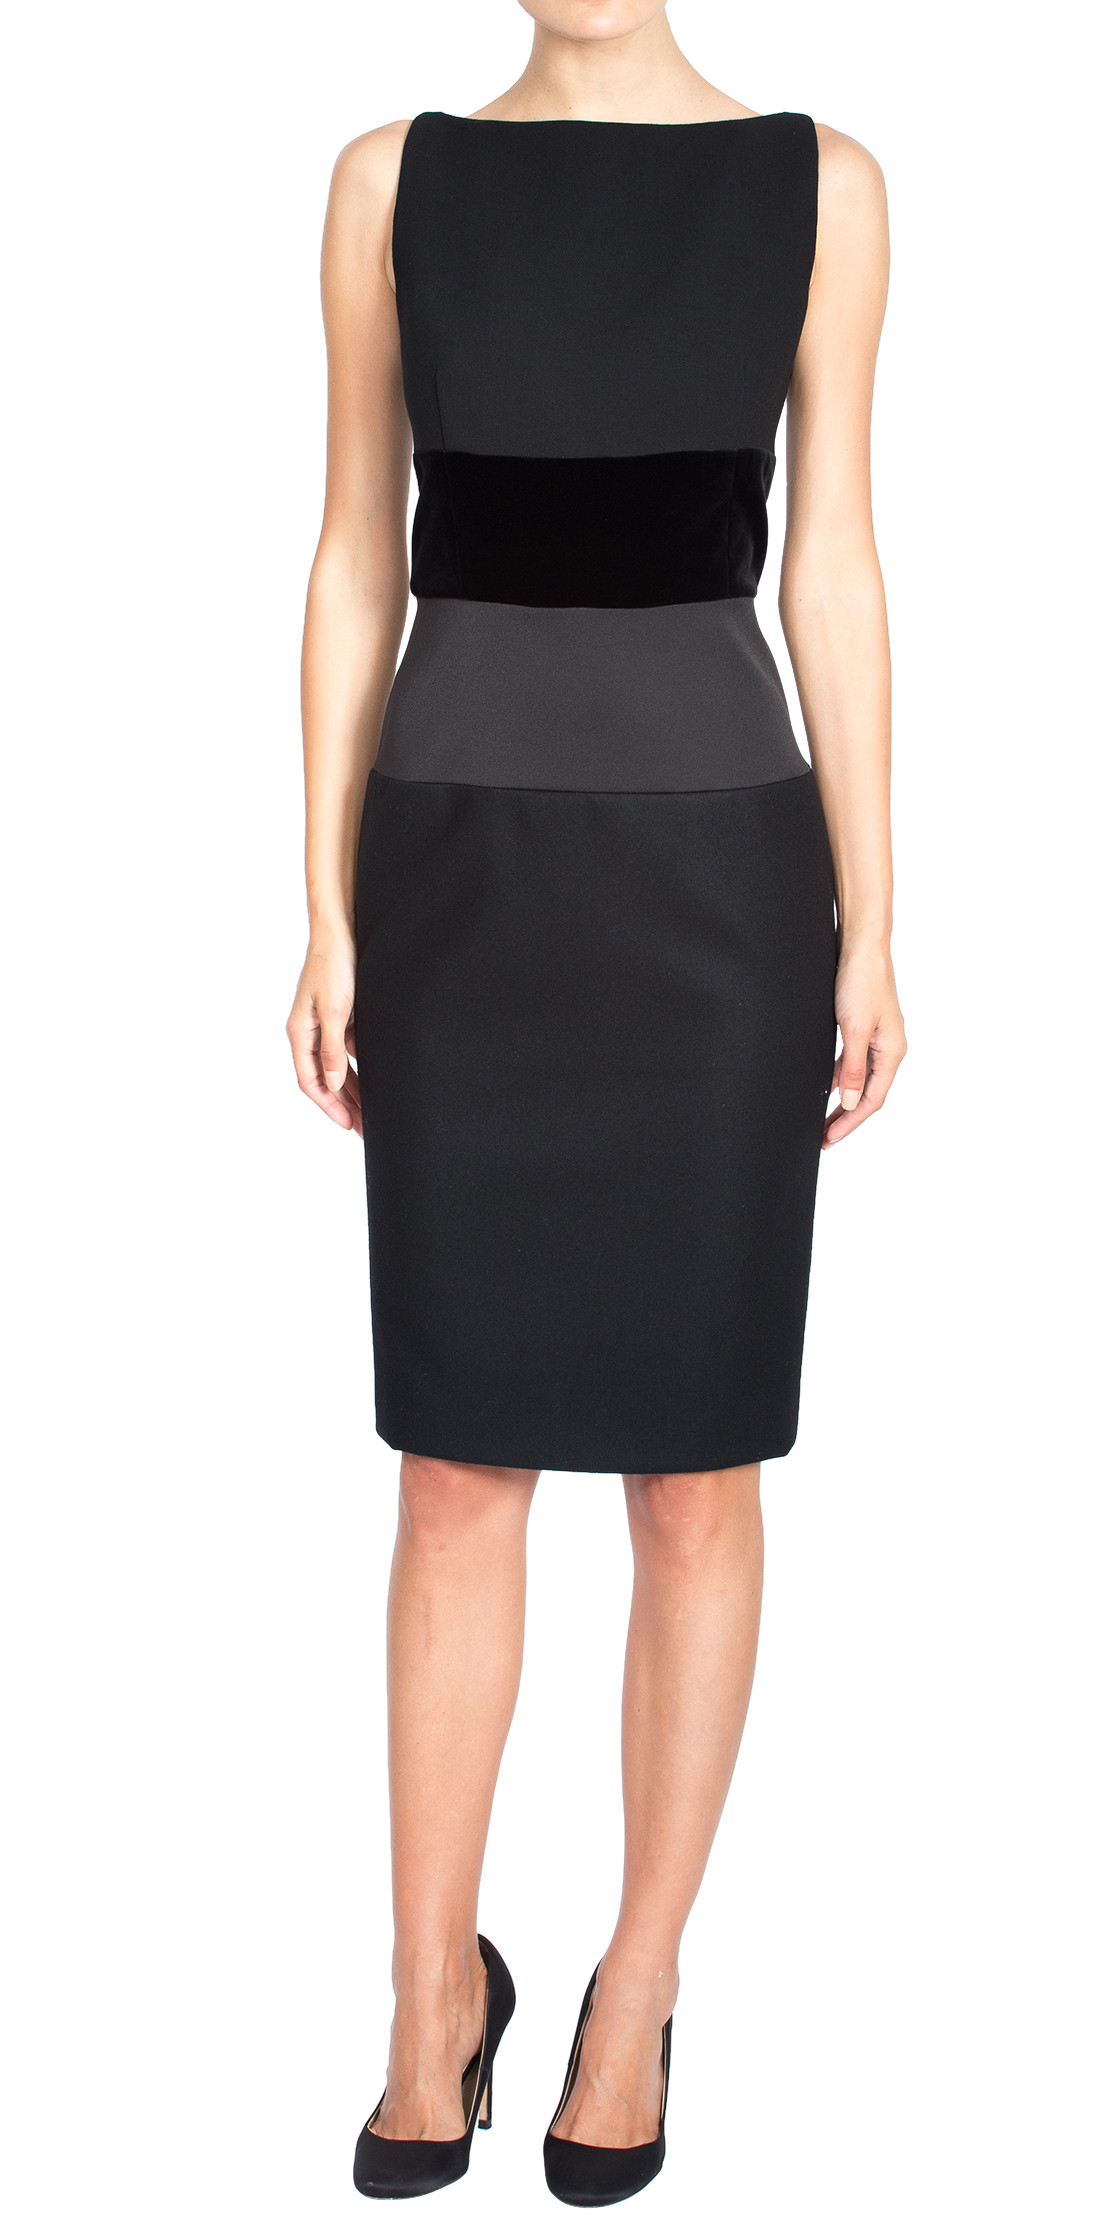 Prada Sleeveless Pencil Dress